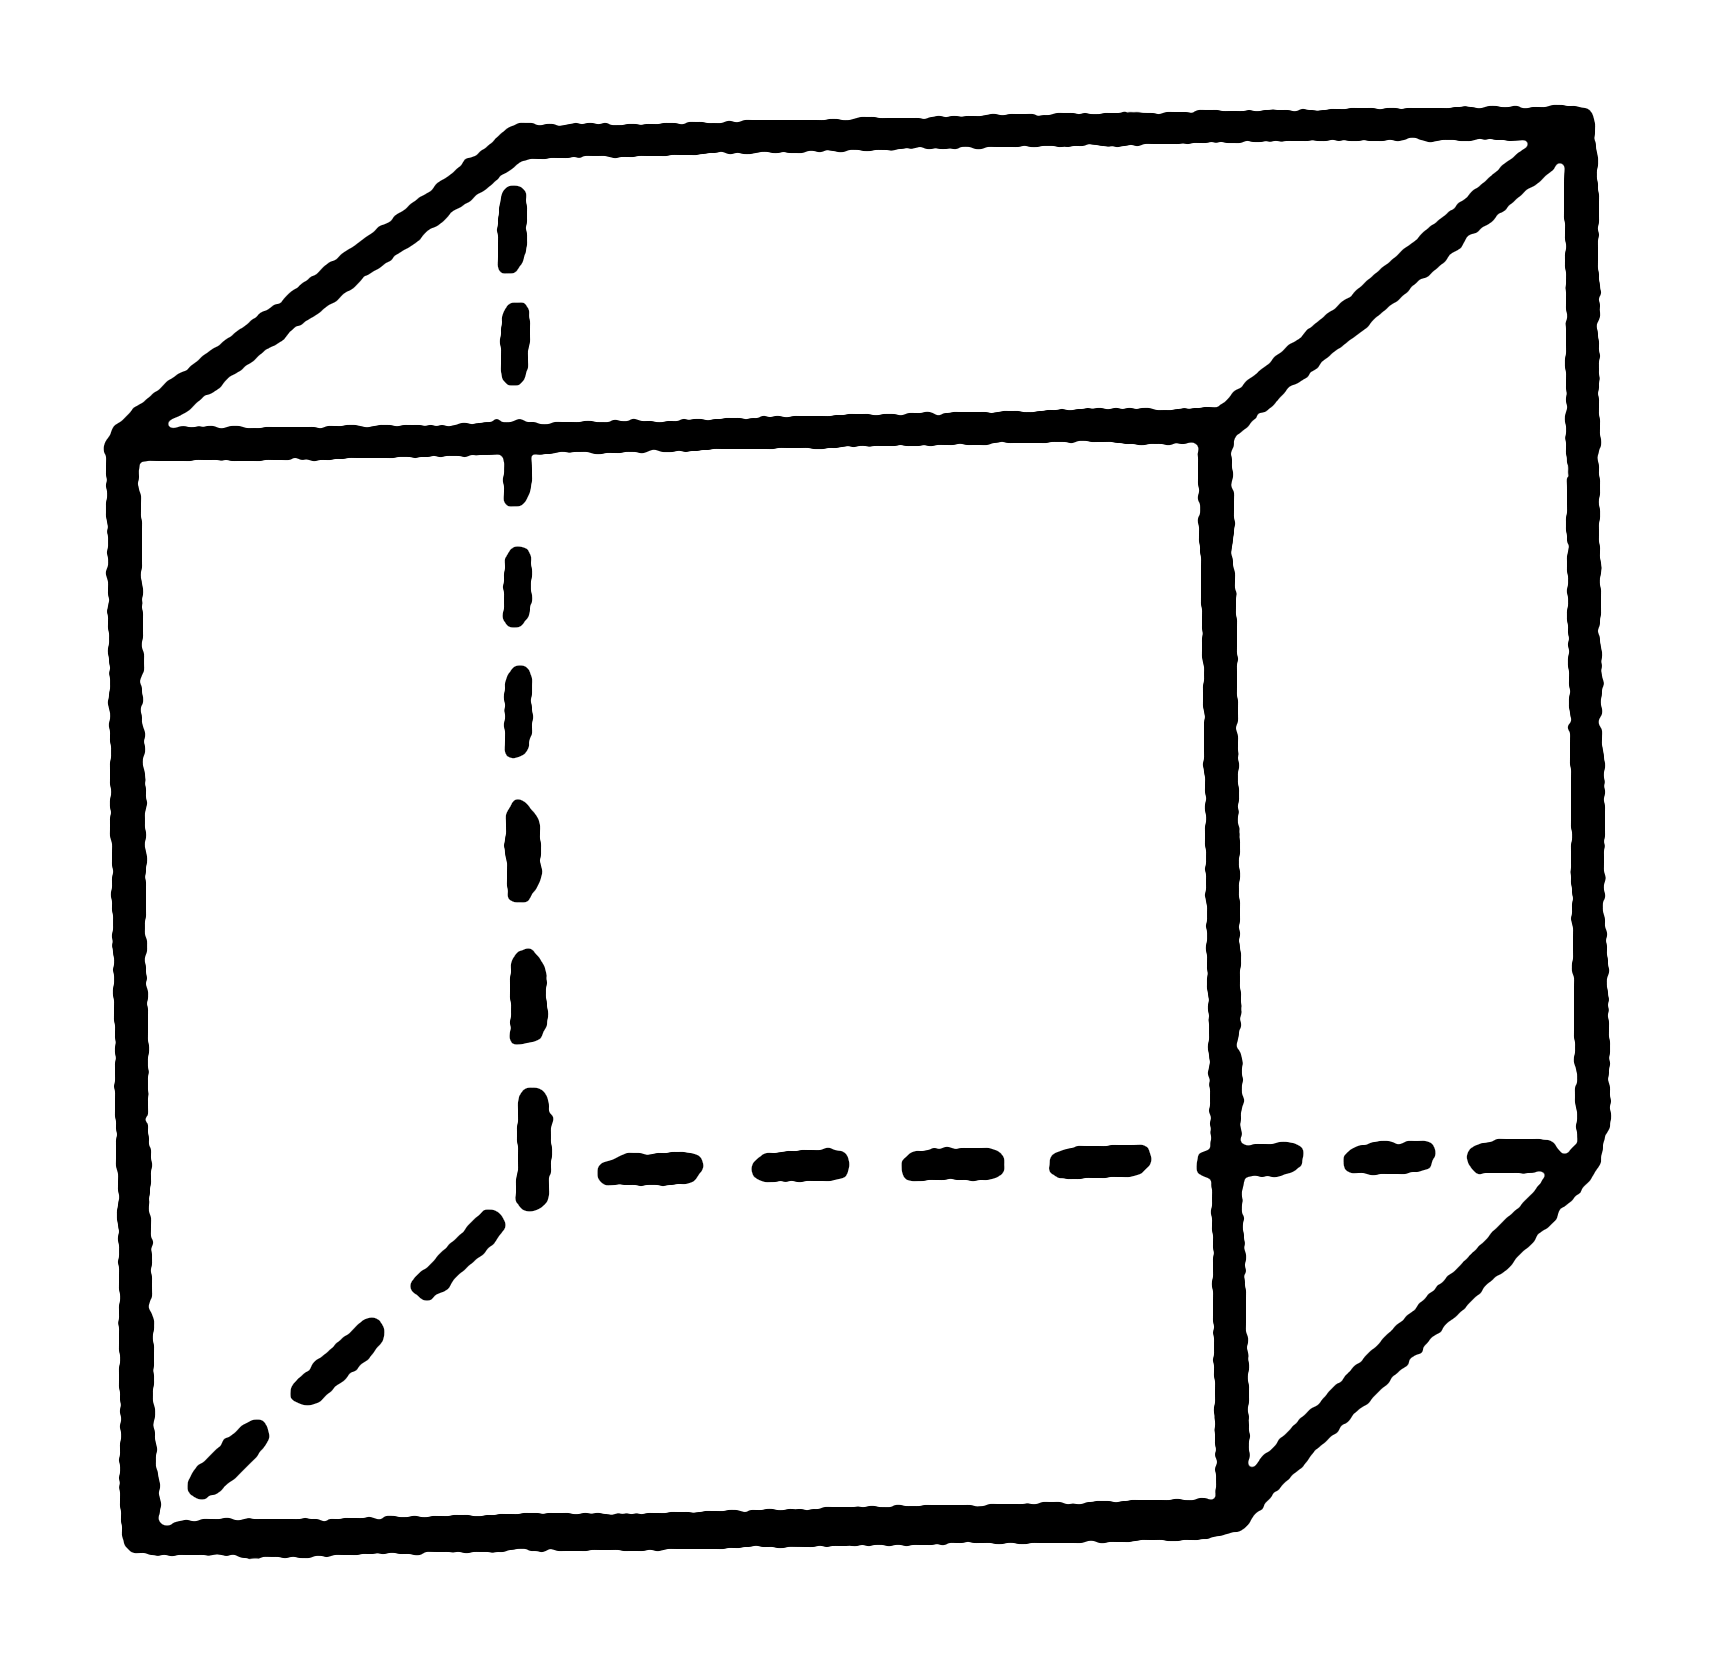 Cube__psf_